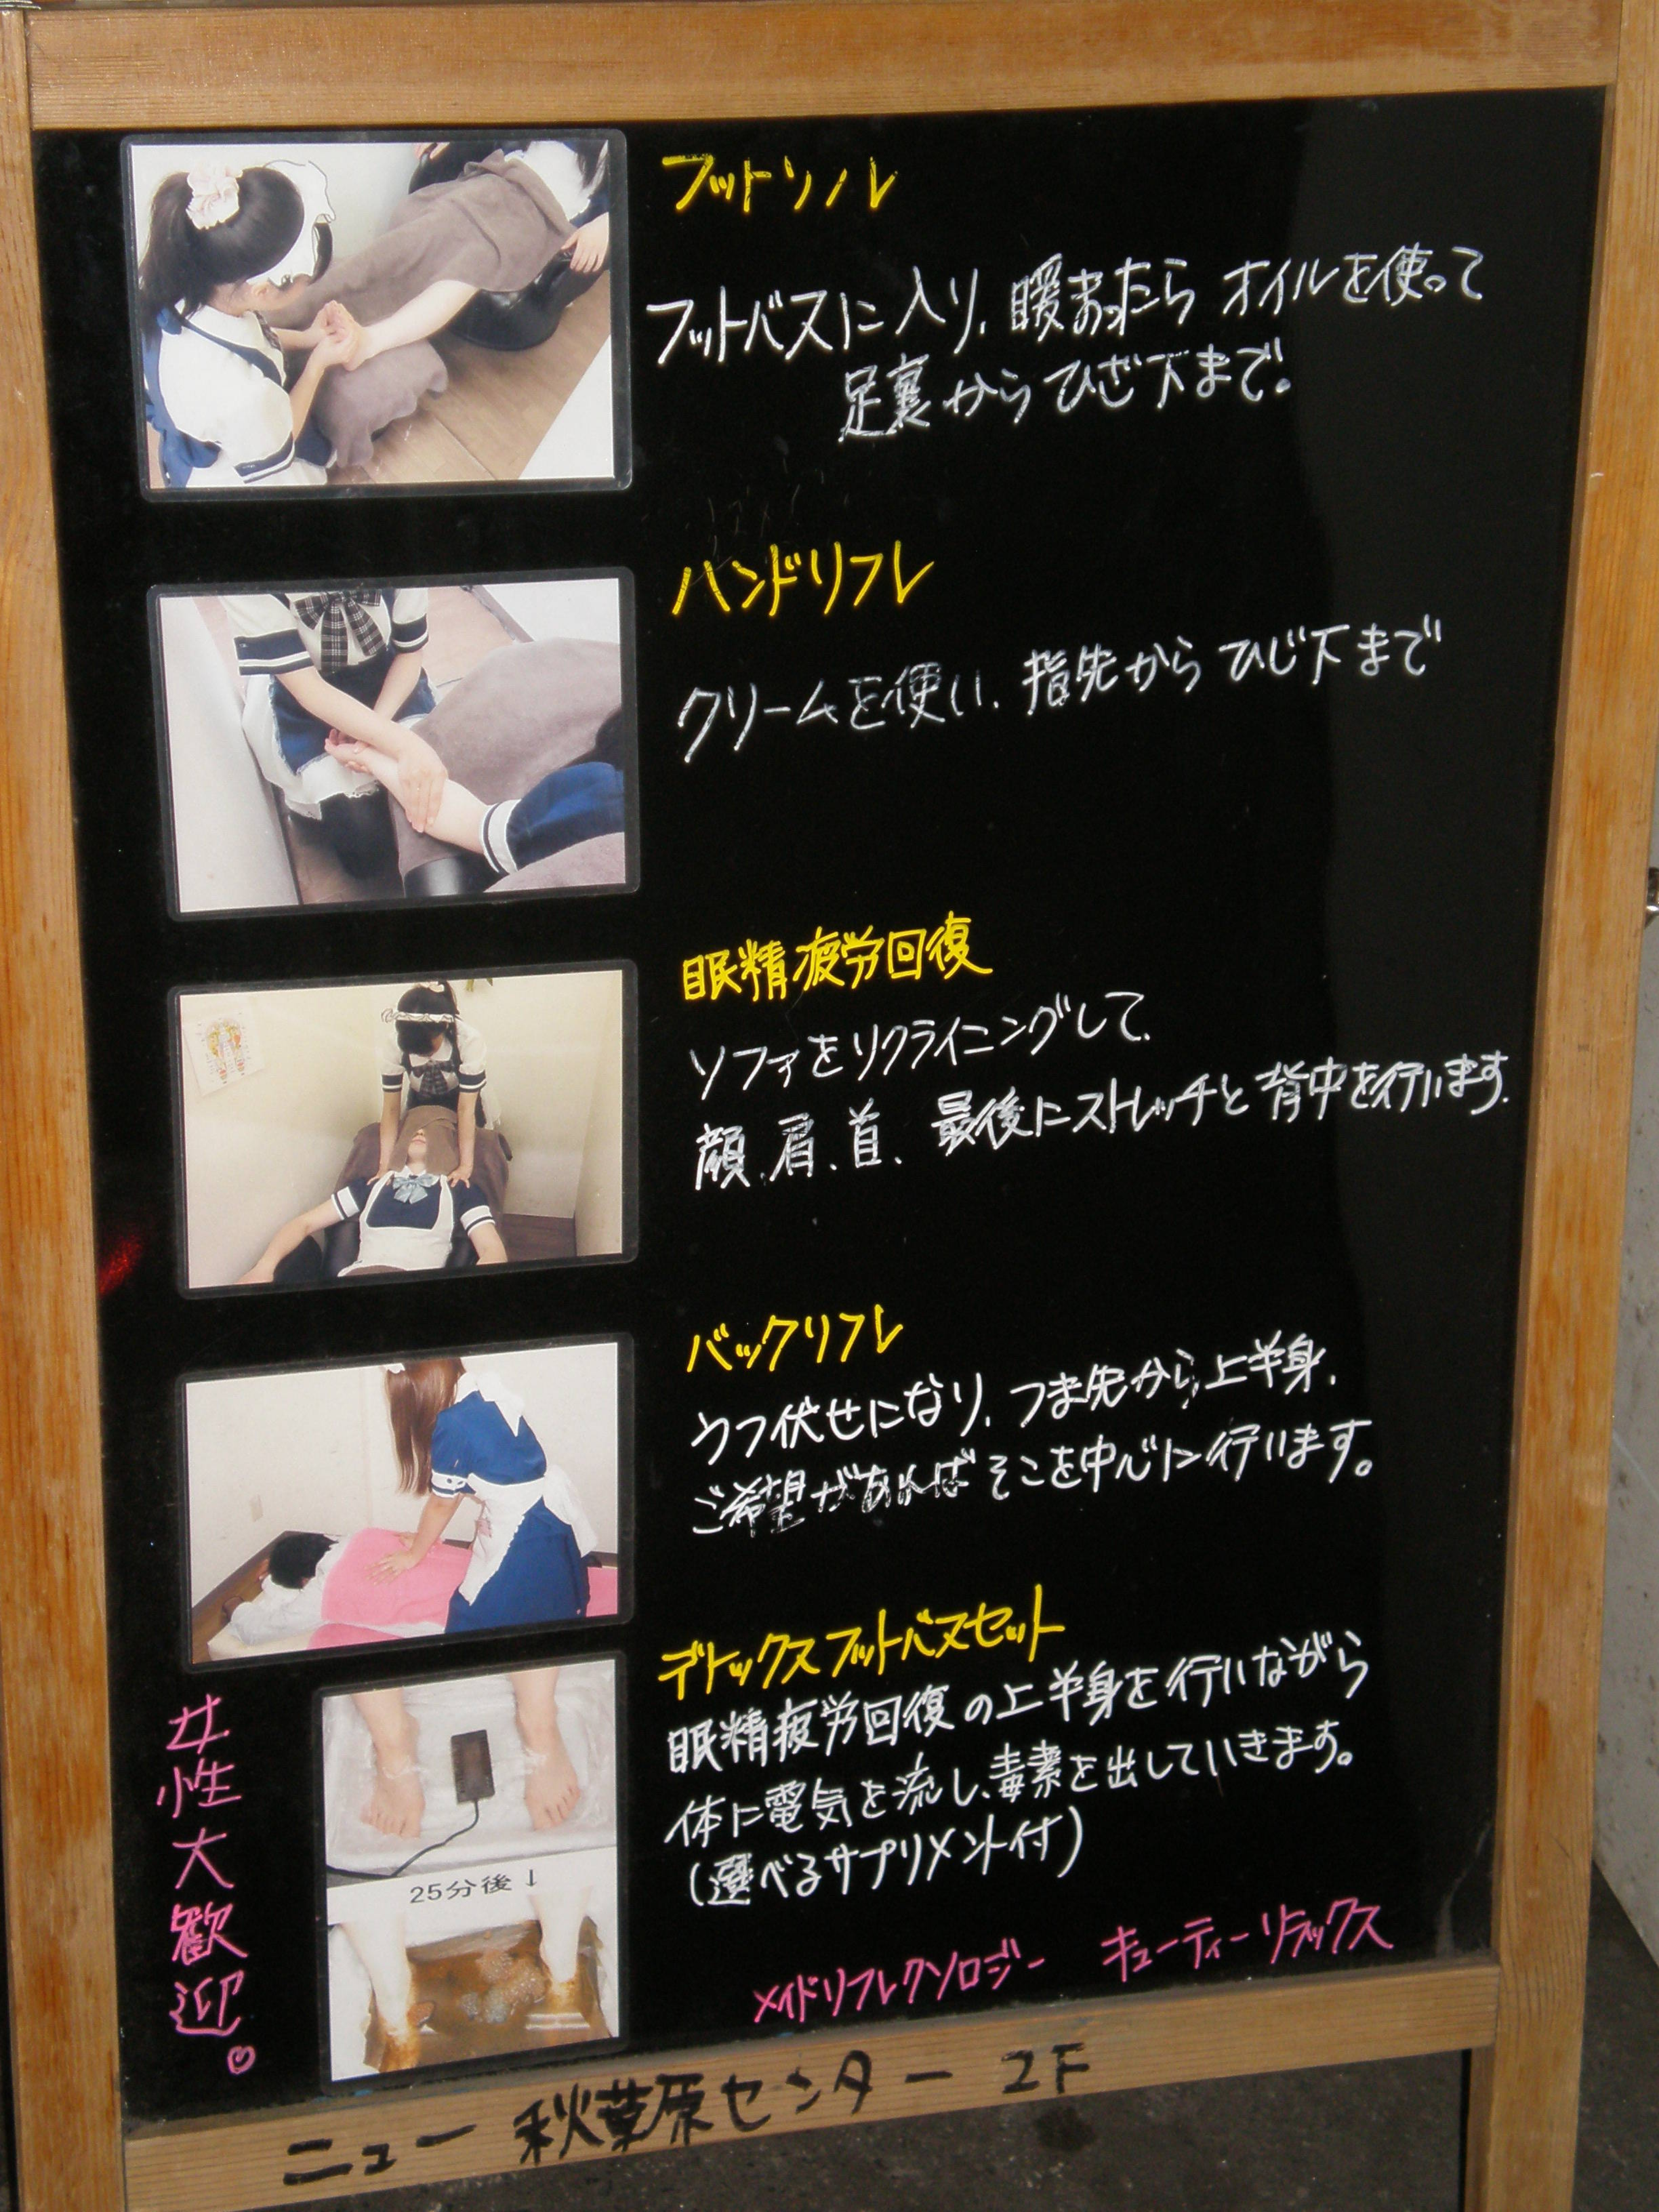 Maid Cafe massage sign